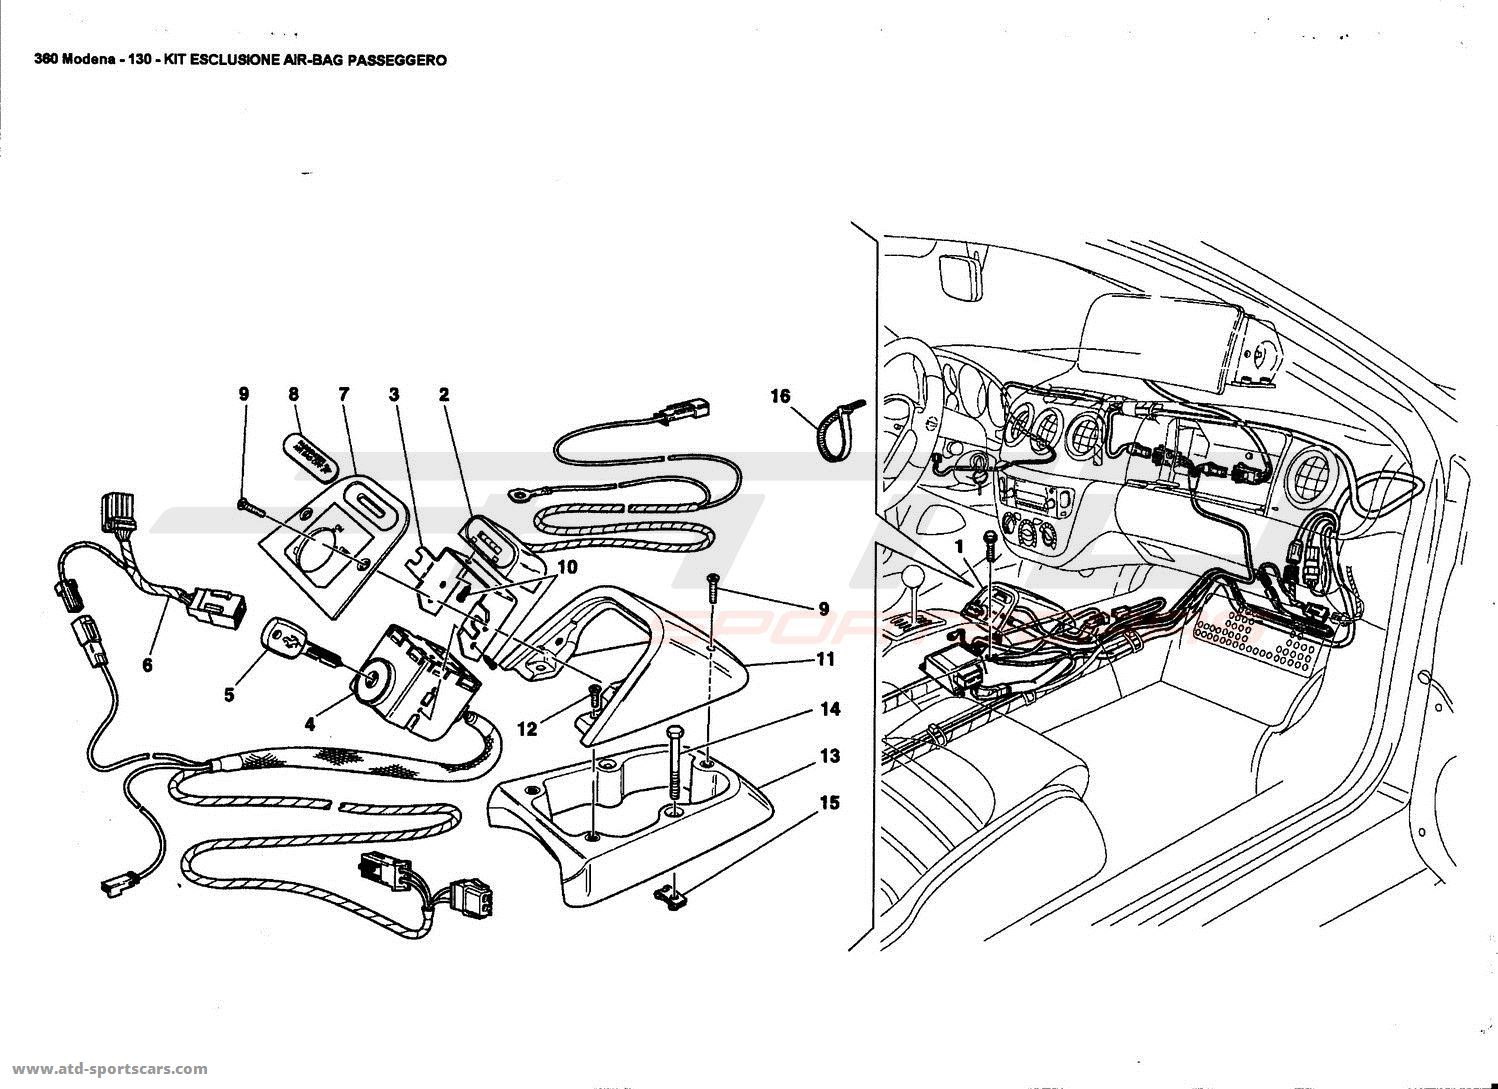 Ferrari 360 Modena Electrical parts at ATD-Sportscars